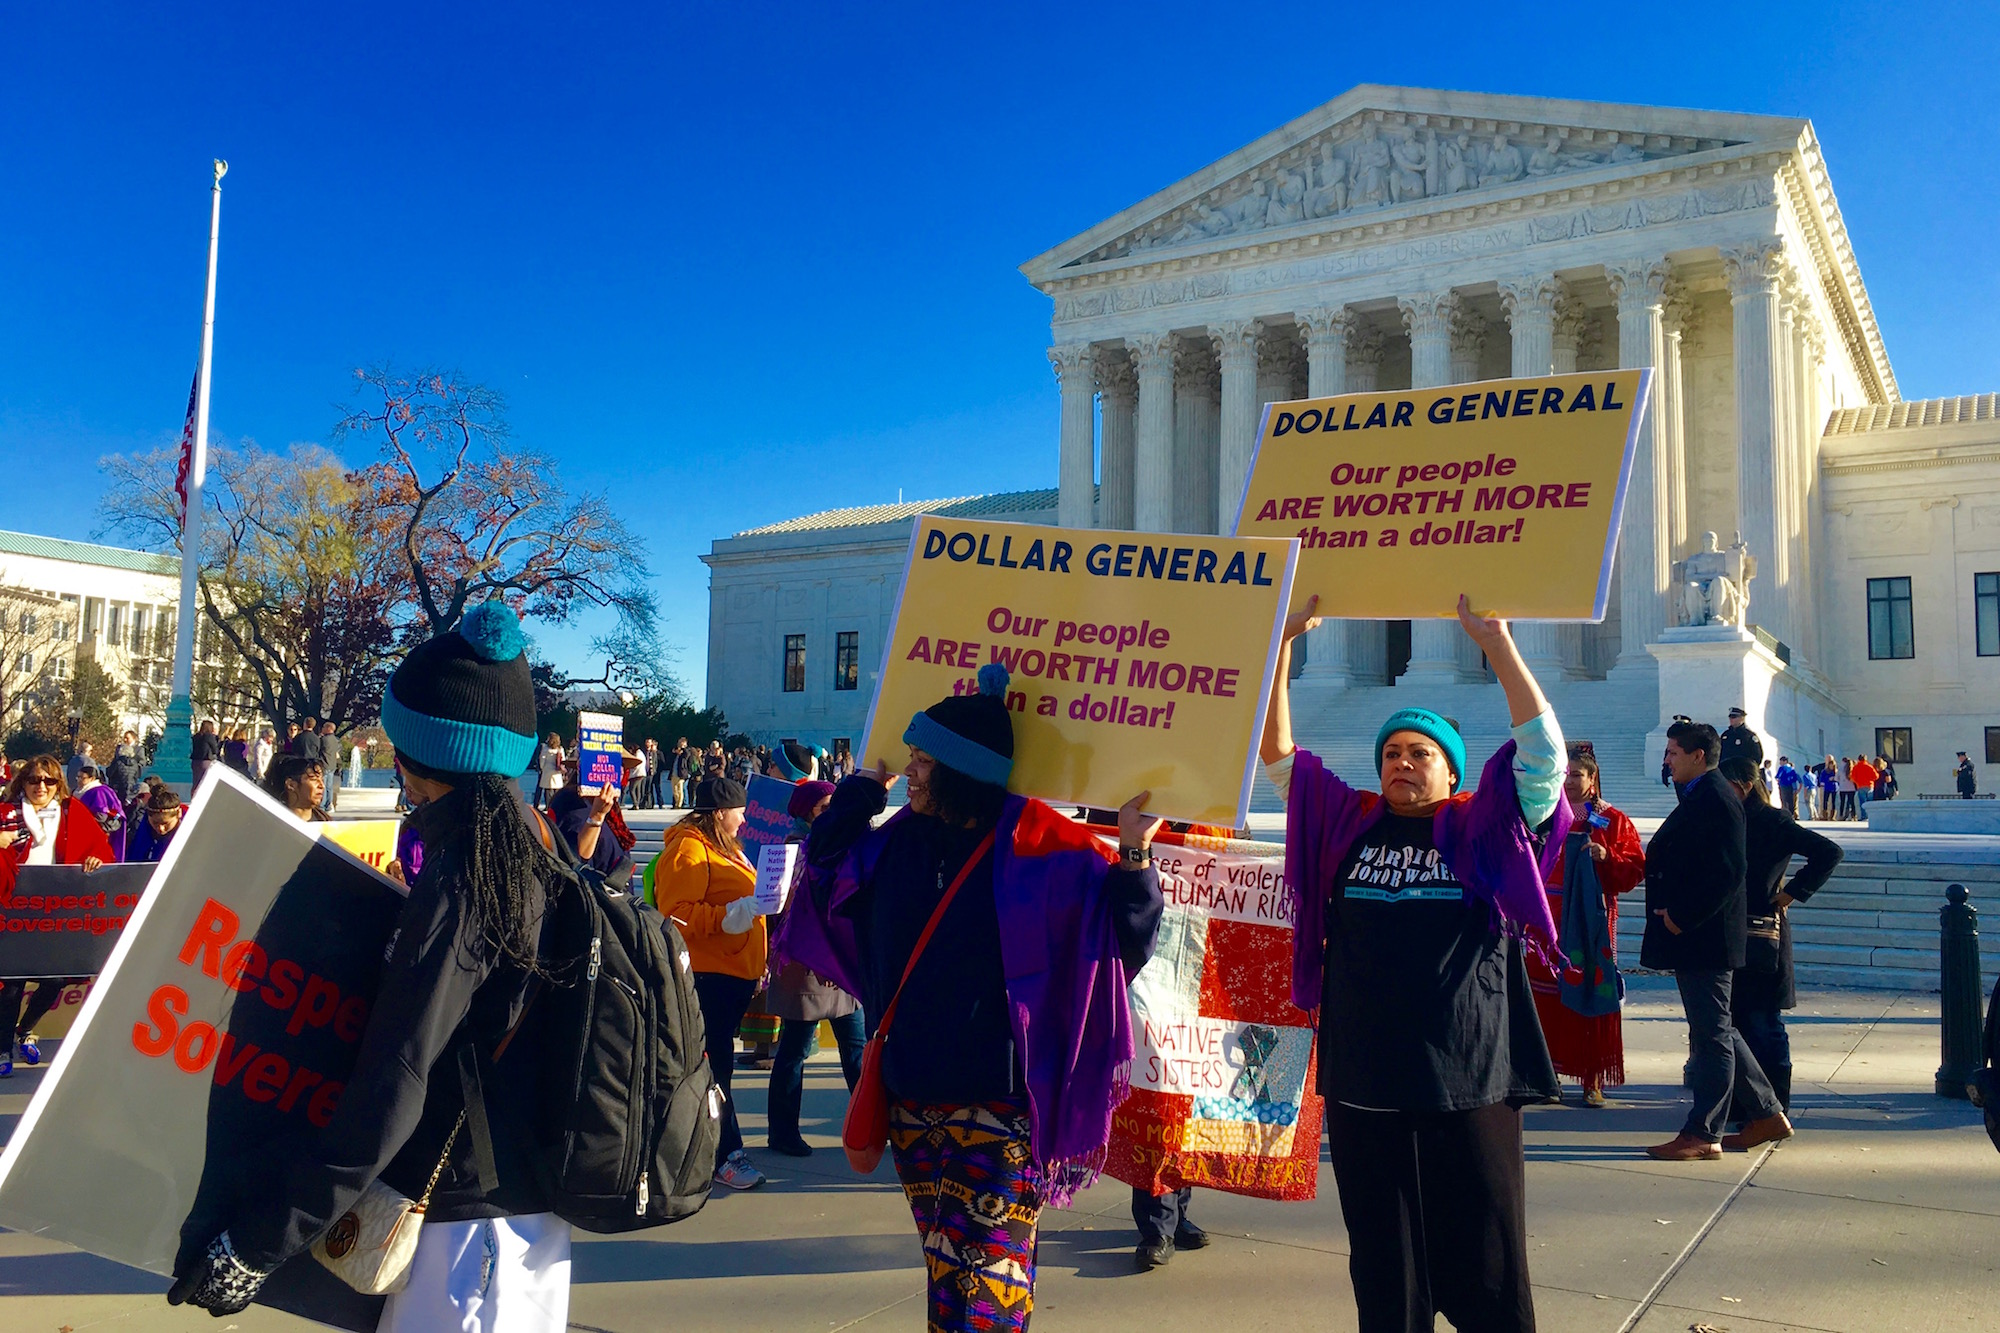 Supreme Court opens new term with tribal immunity on the docket